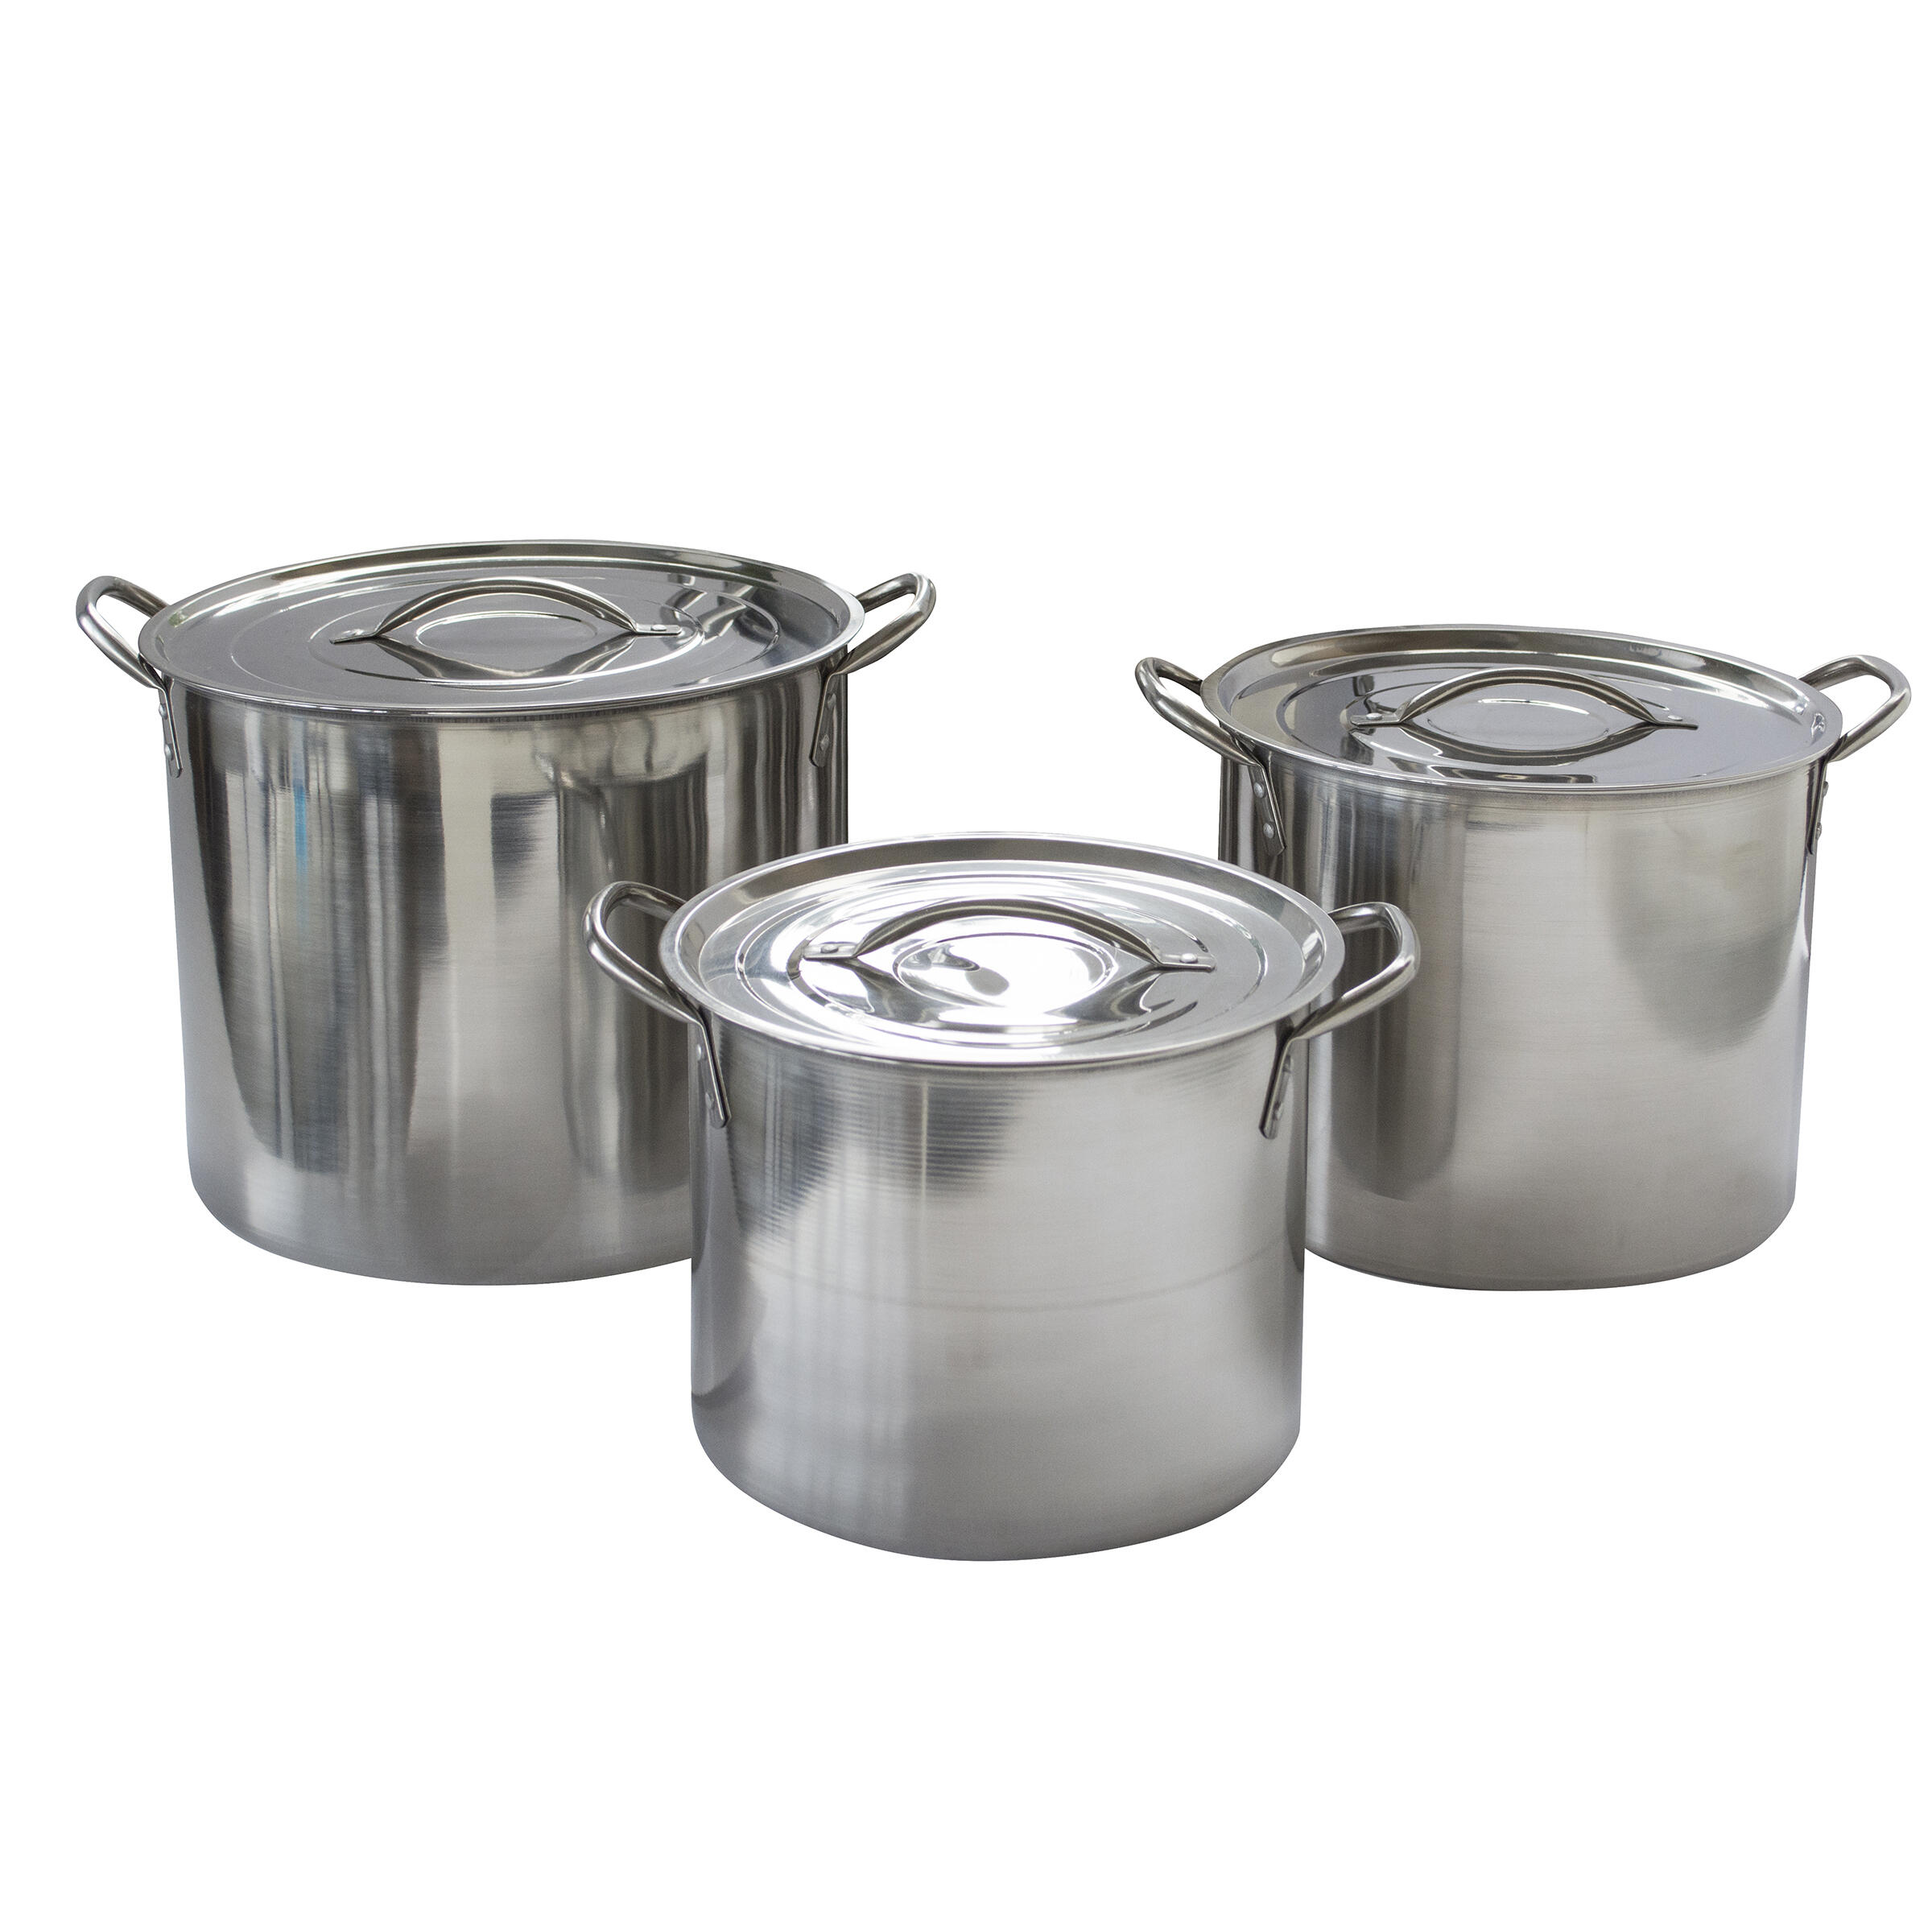 AmeriHome 6-Piece Stainless Steel with Lids Stock Pot Set